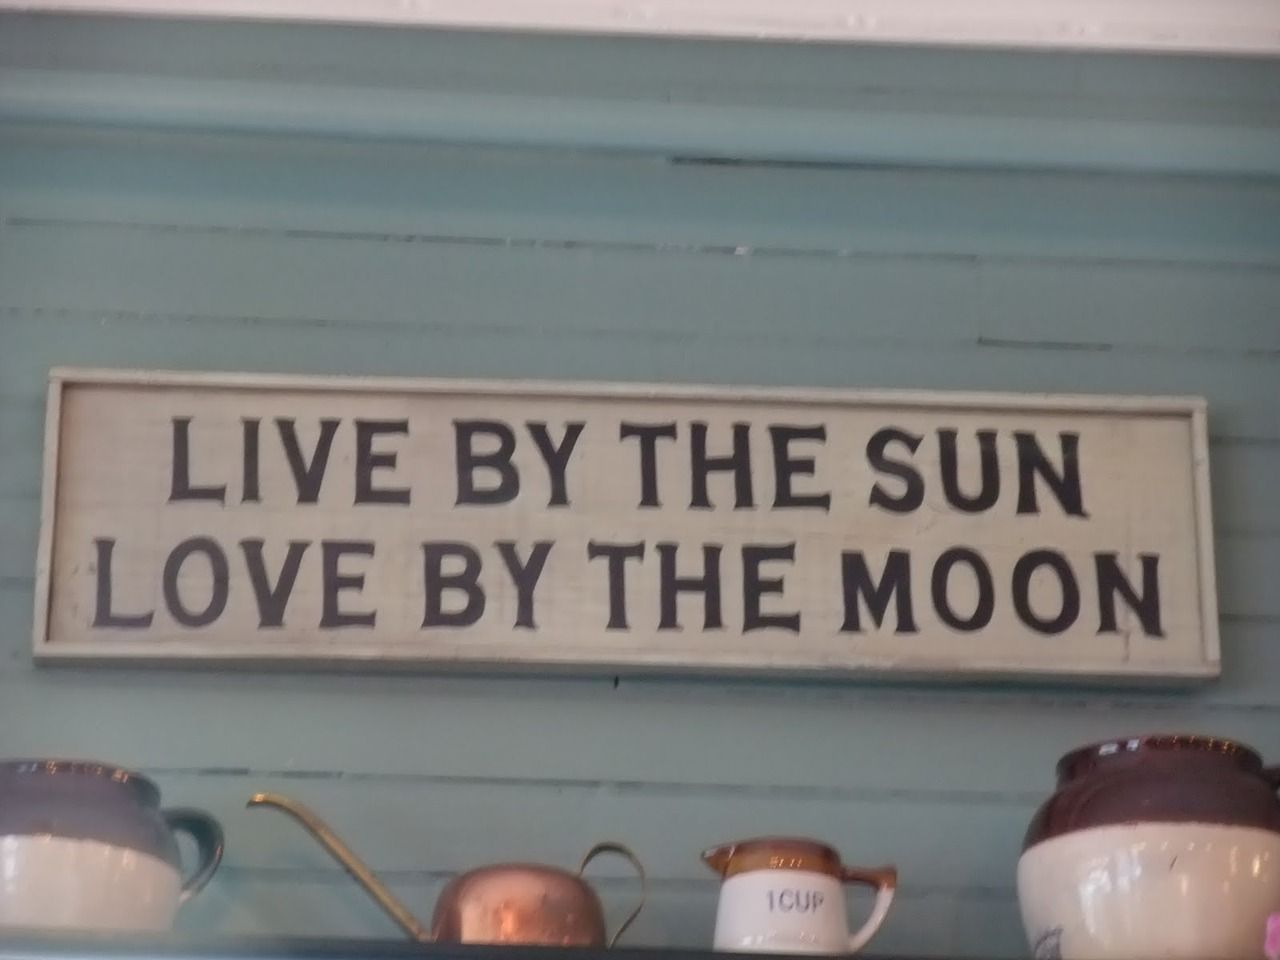 Sun And Moon Quotes Livethe Sun Lovethe Moon  Roomhome Decor ❁  Pinterest